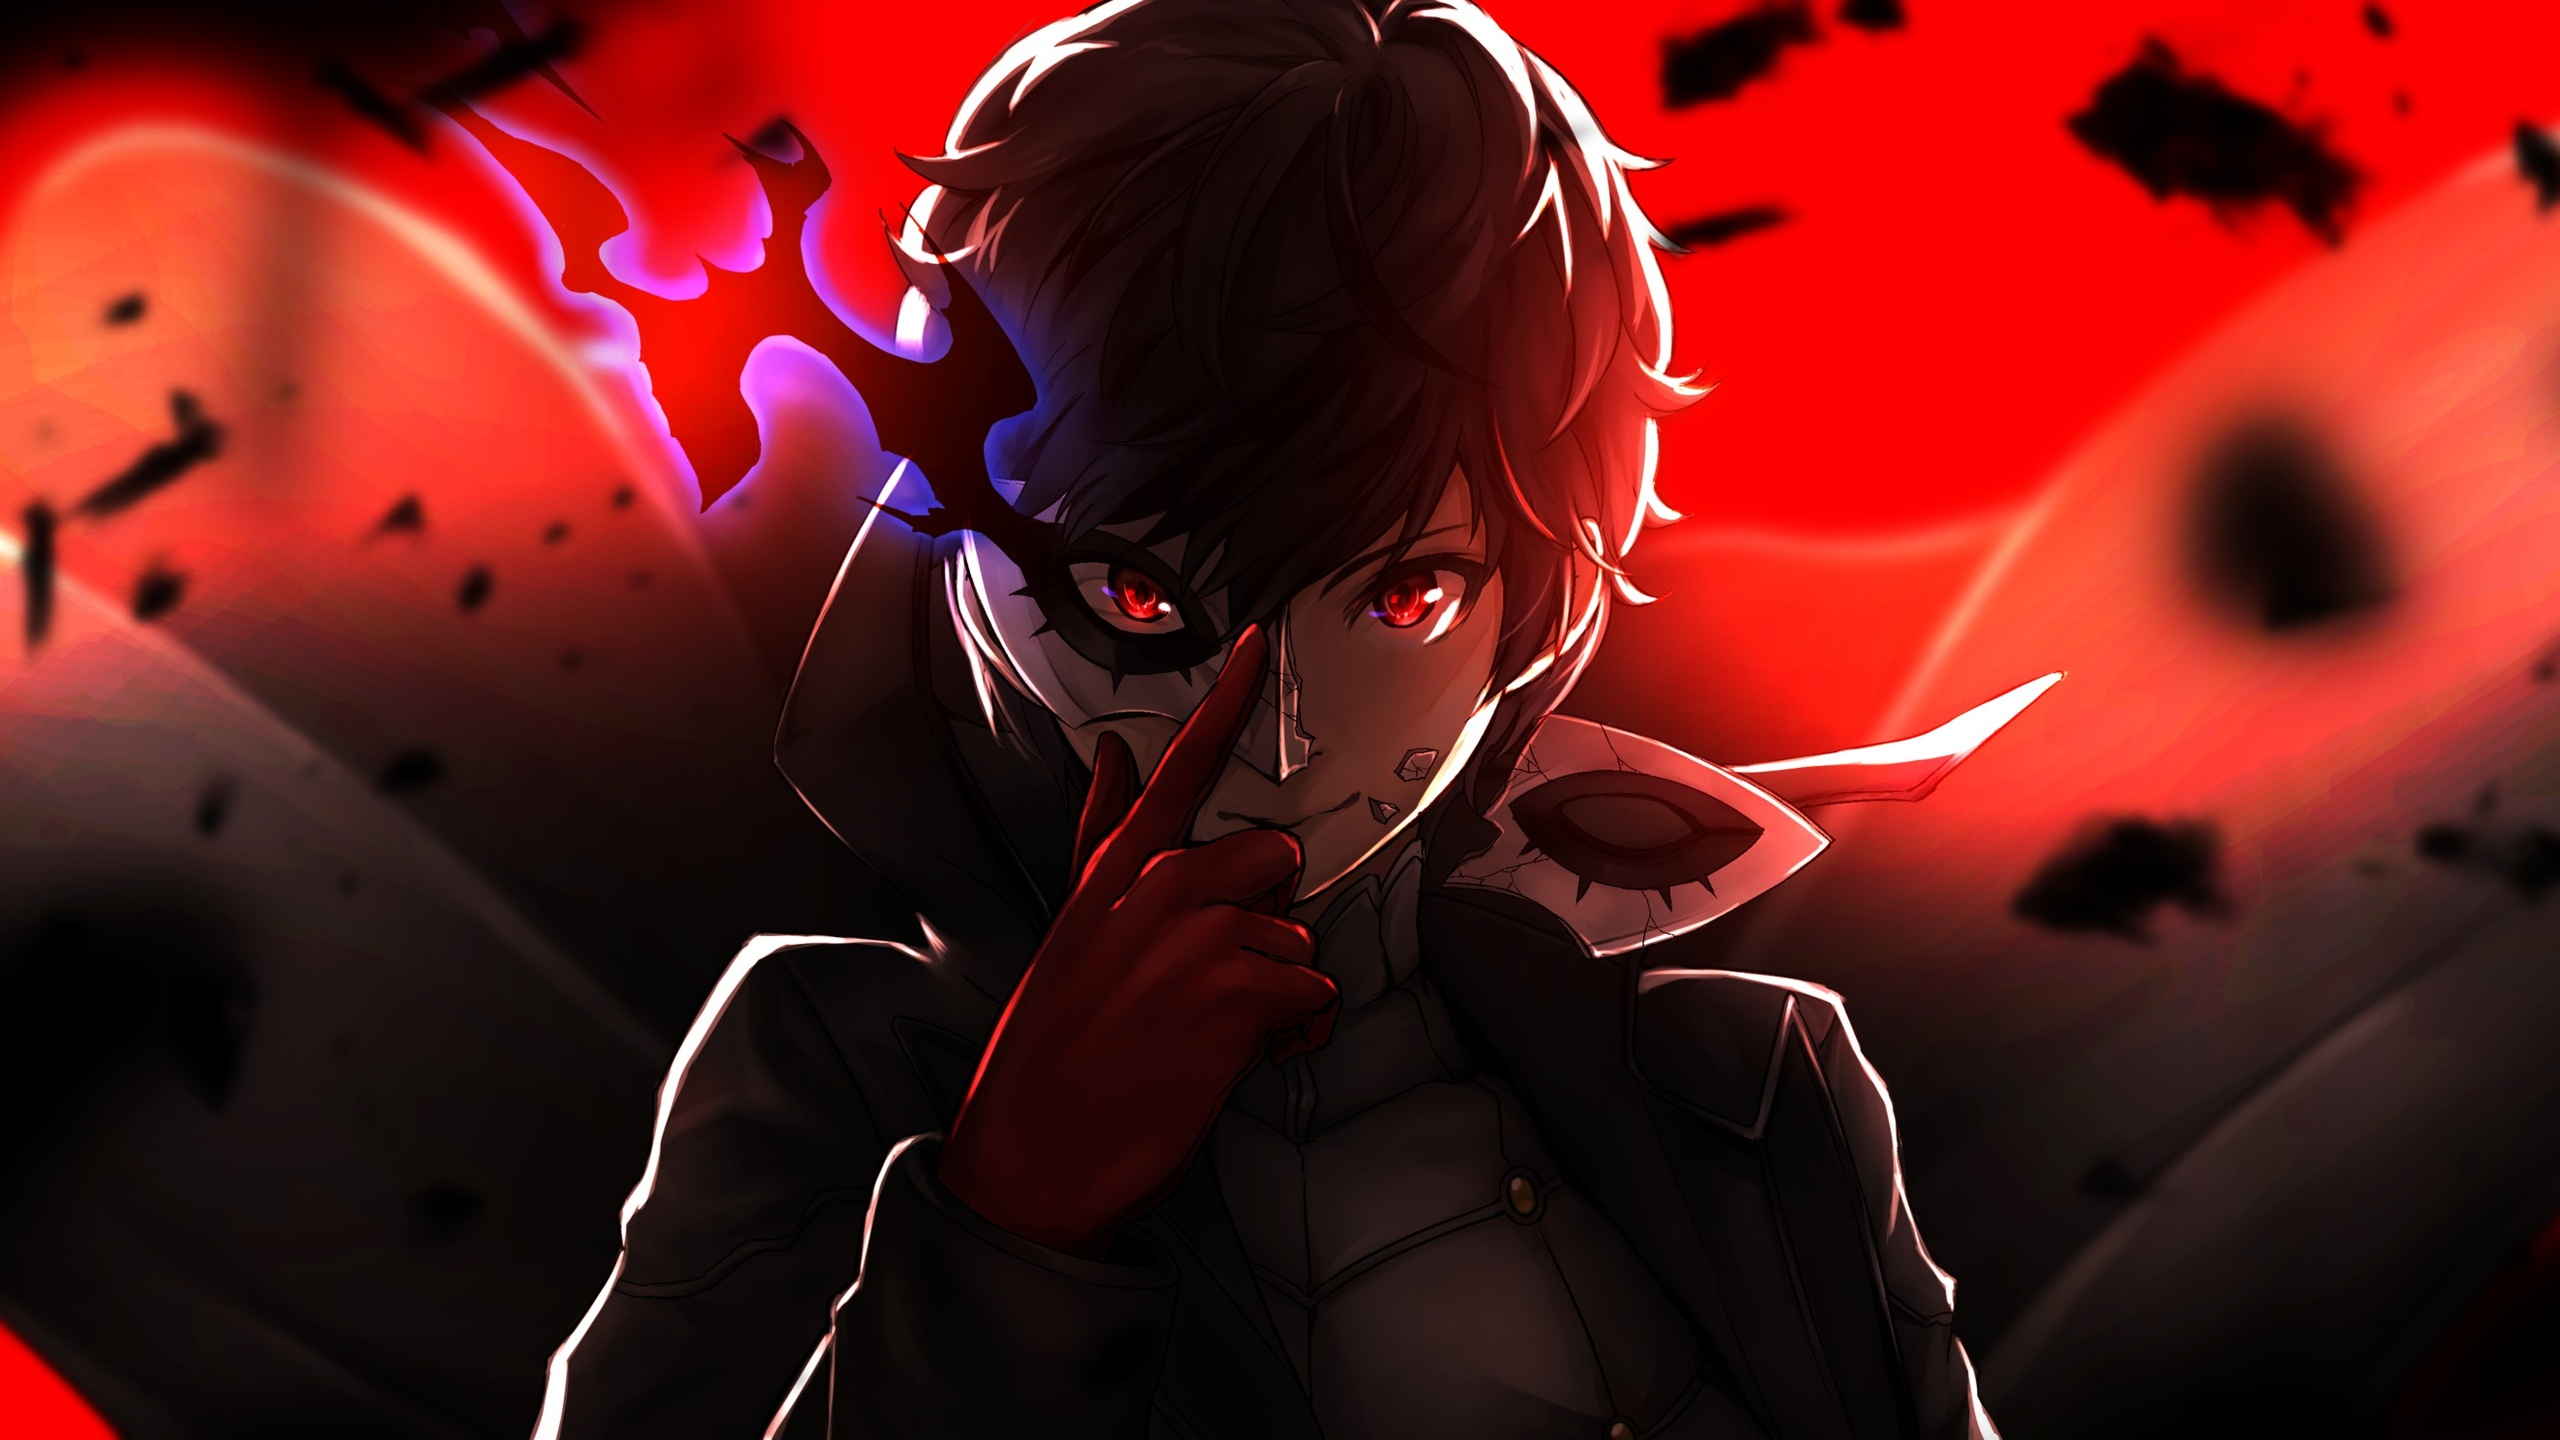 2560x1440 Protagoinst Persona 5 4k 1440p Resolution Hd 4k Wallpapers Images Backgrounds Photos And Pictures